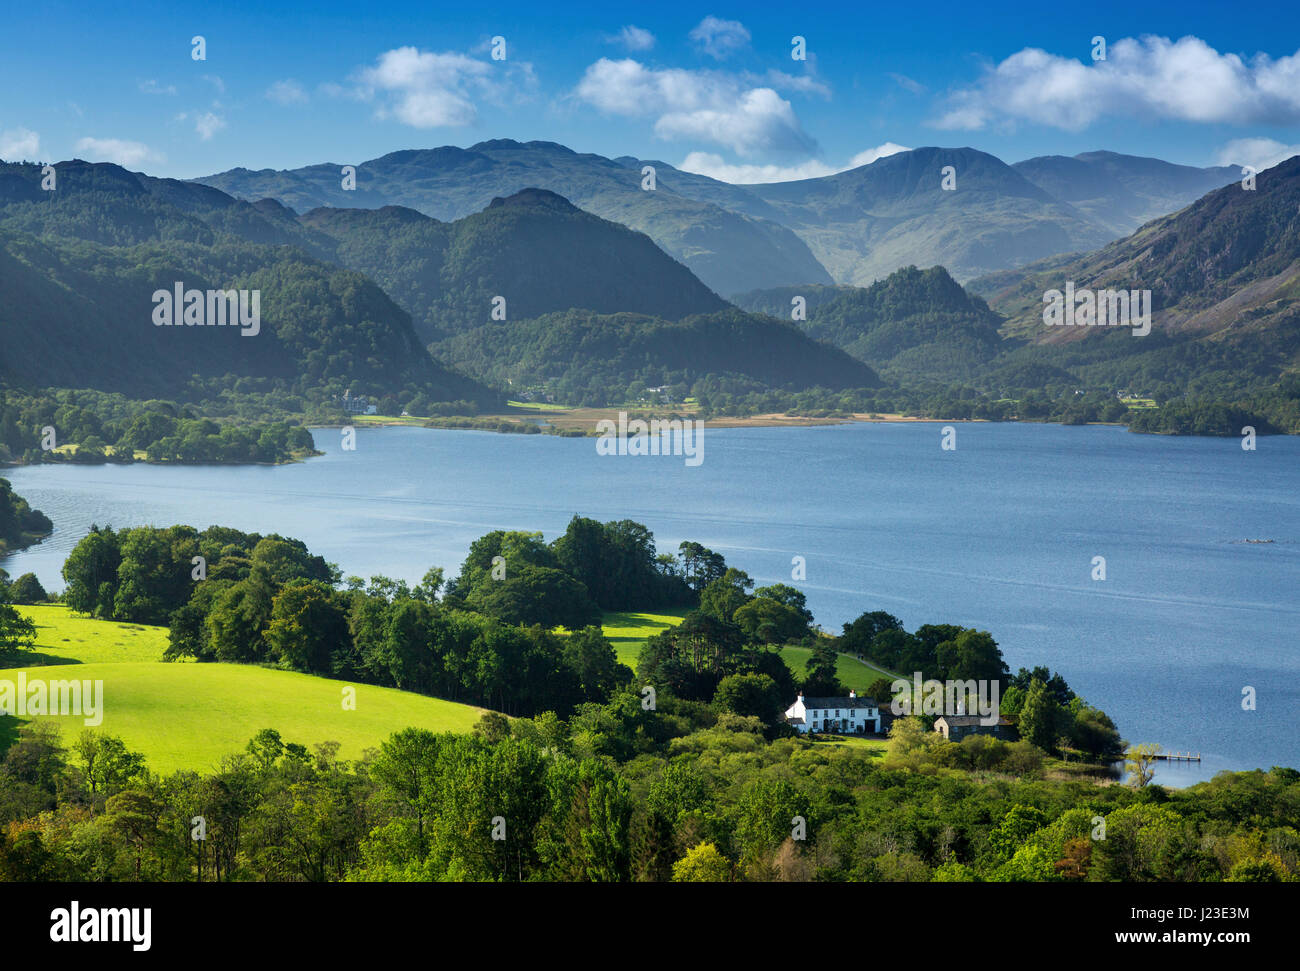 Derwentwater, Lake District, England, UK-englischen Lake District, Derwent Water Landschaft Szene Stockbild